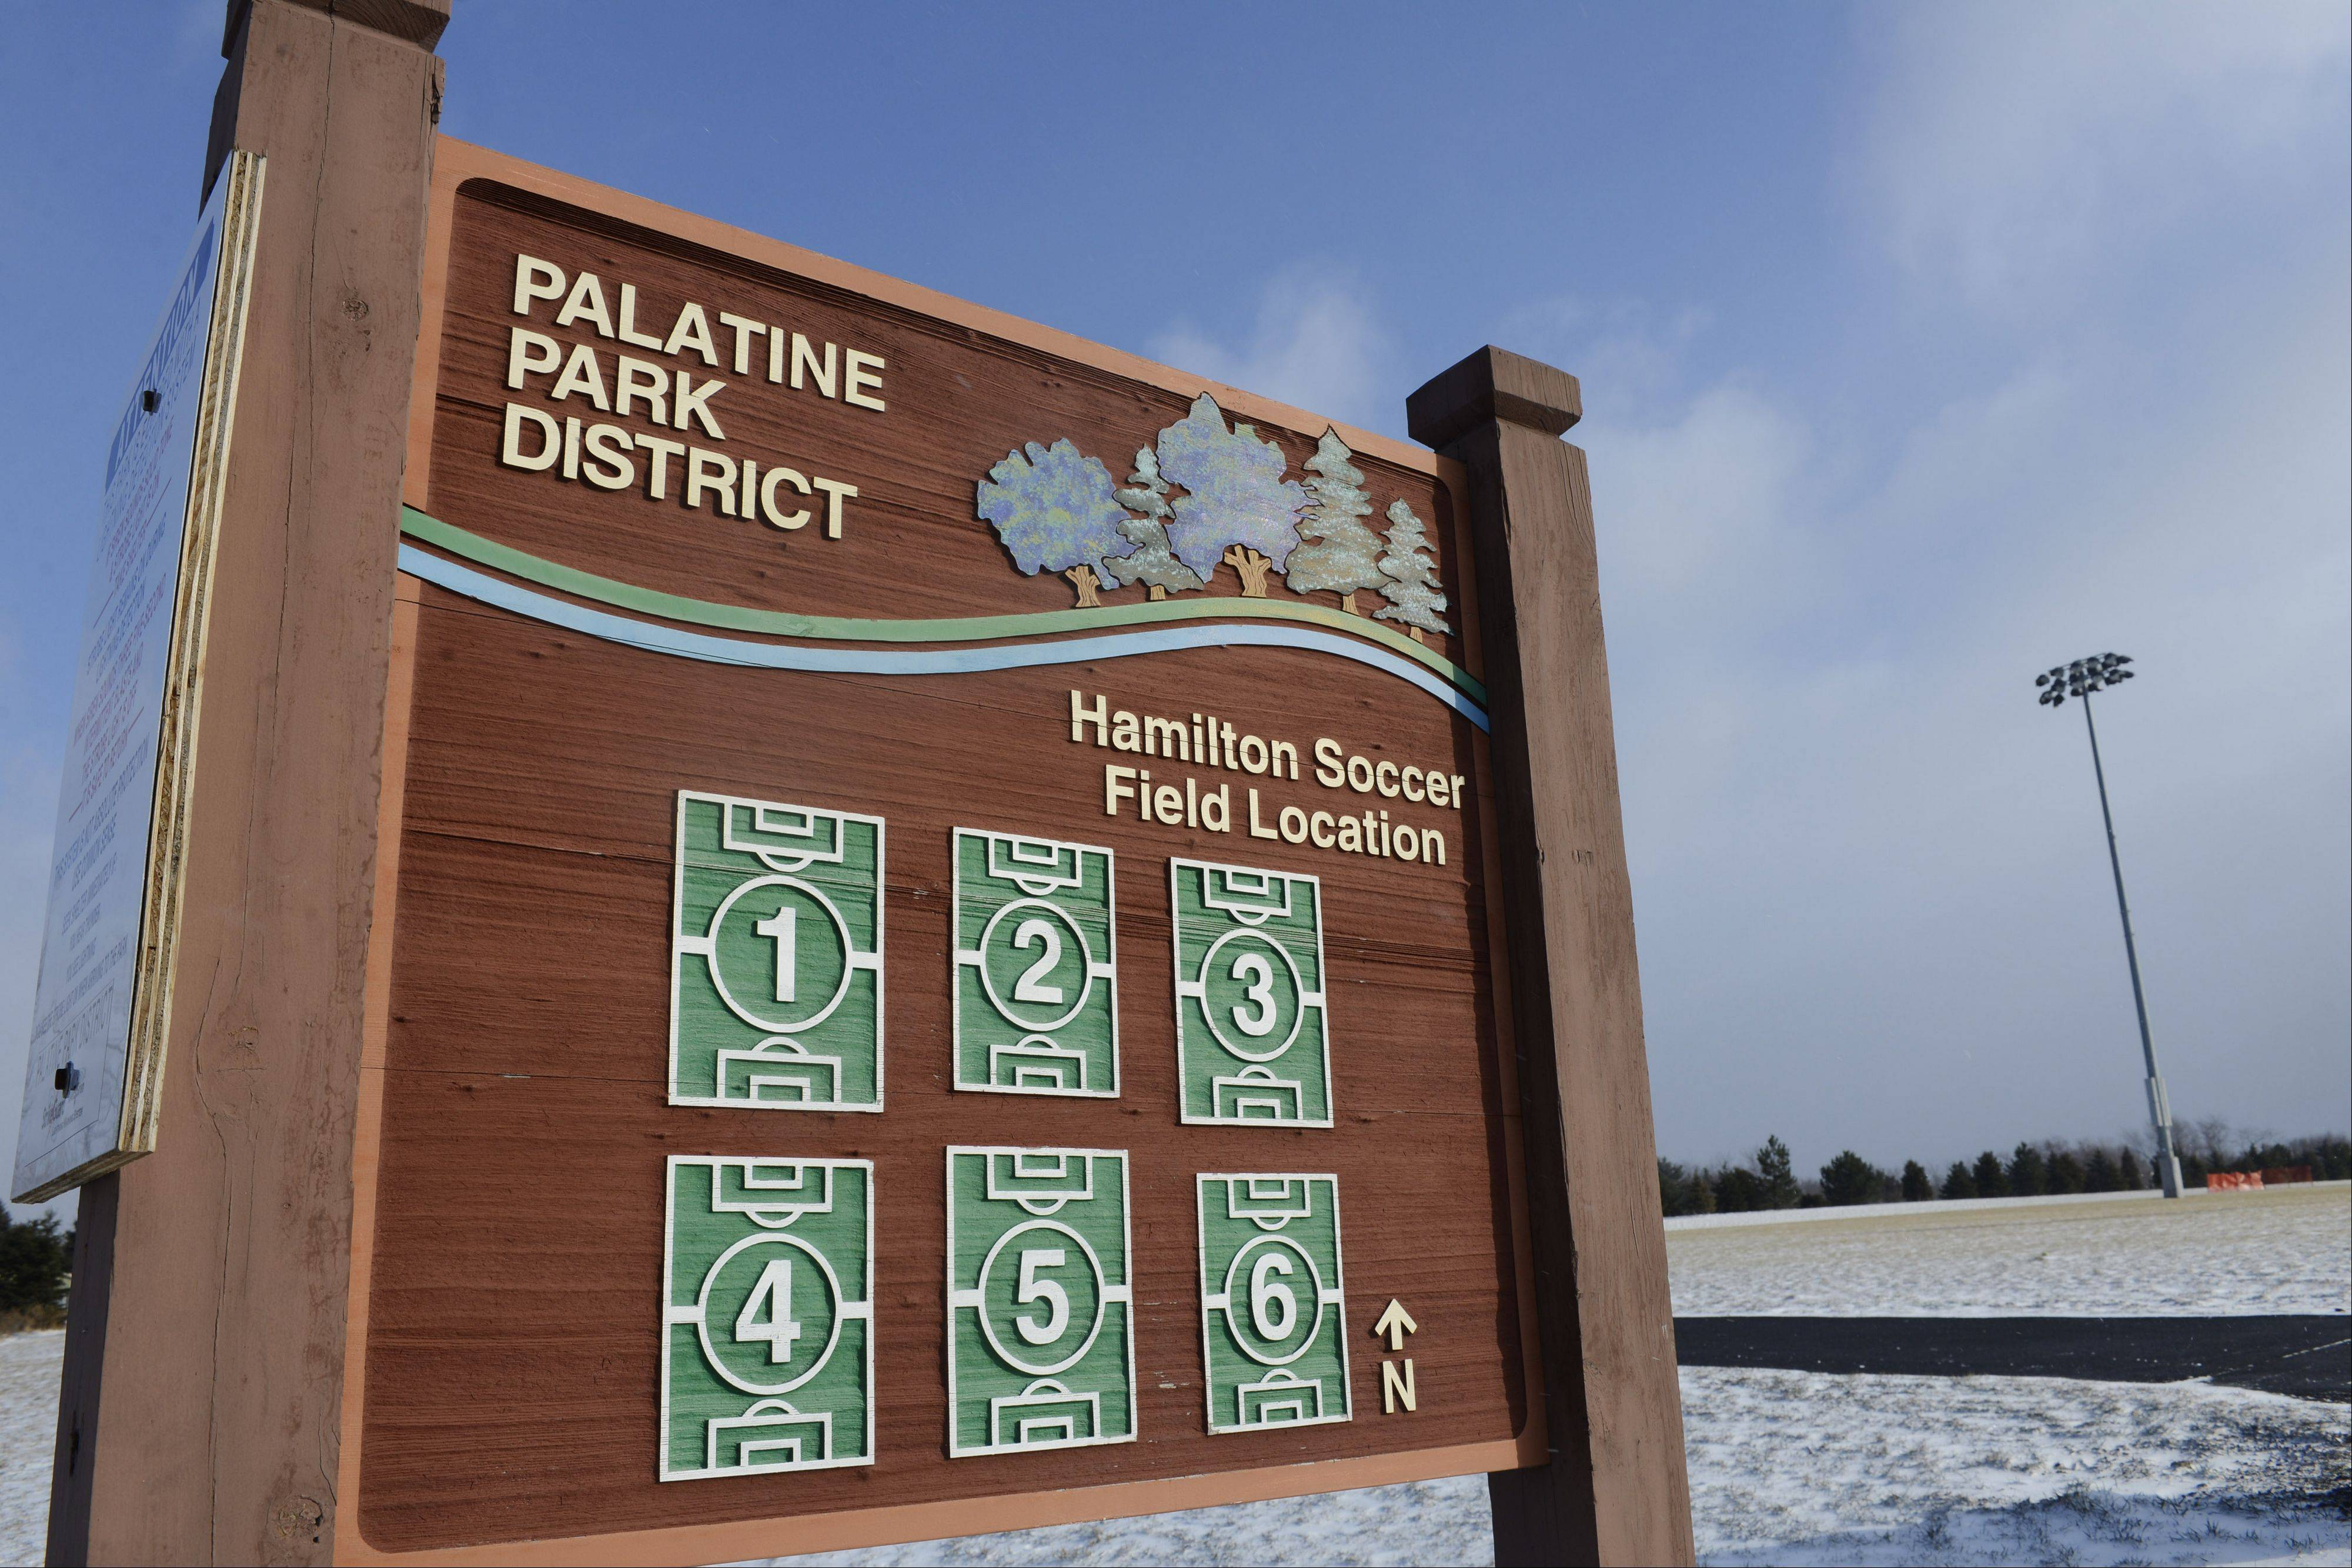 The baseball and soccer fields at Hamilton Reservoir in Palatine will be renamed in honor of Ron Gbur, the former executive director of the Palatine Park District. Among other things, Gbur is credited with the development of the sports fields.